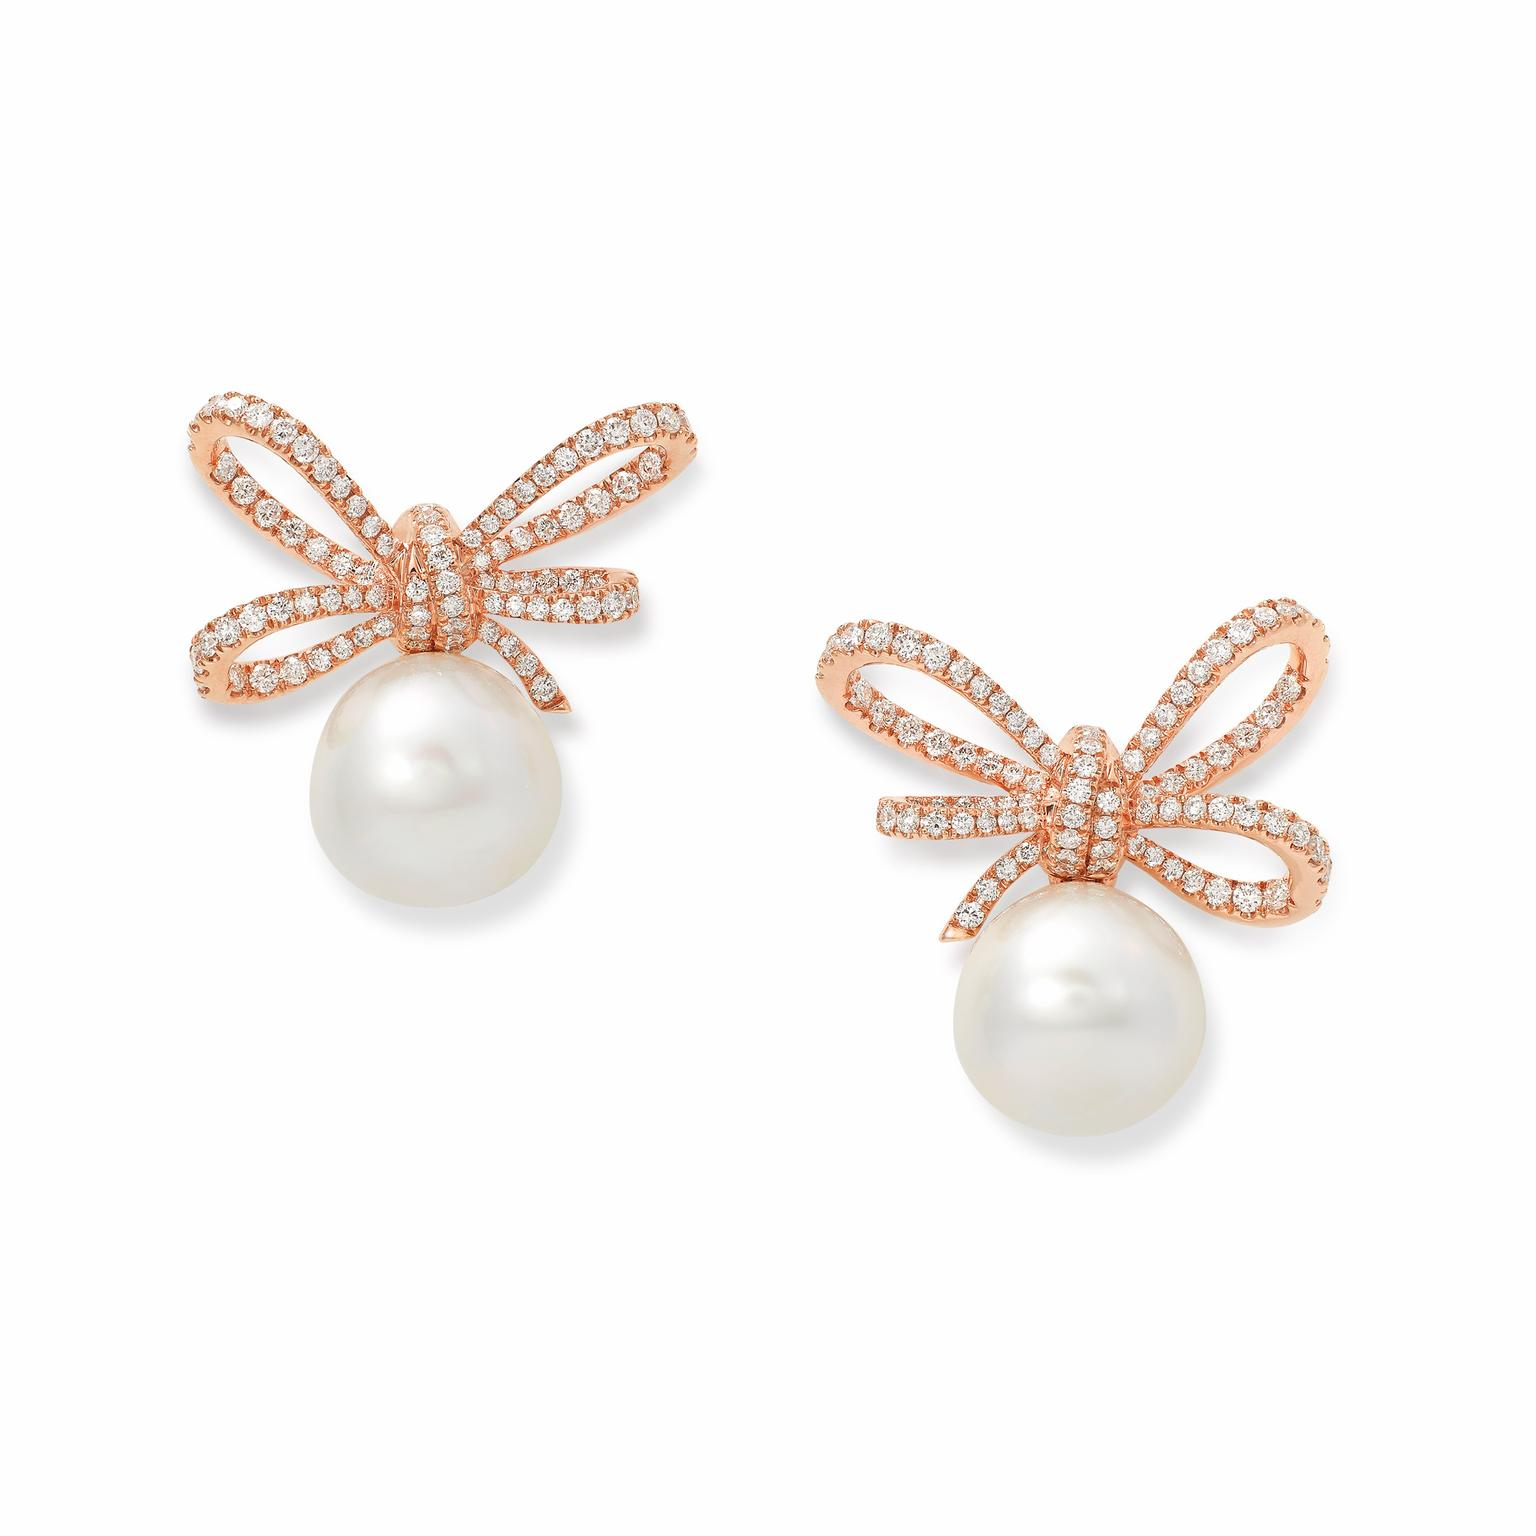 Vanleles diamond and pearl earrings